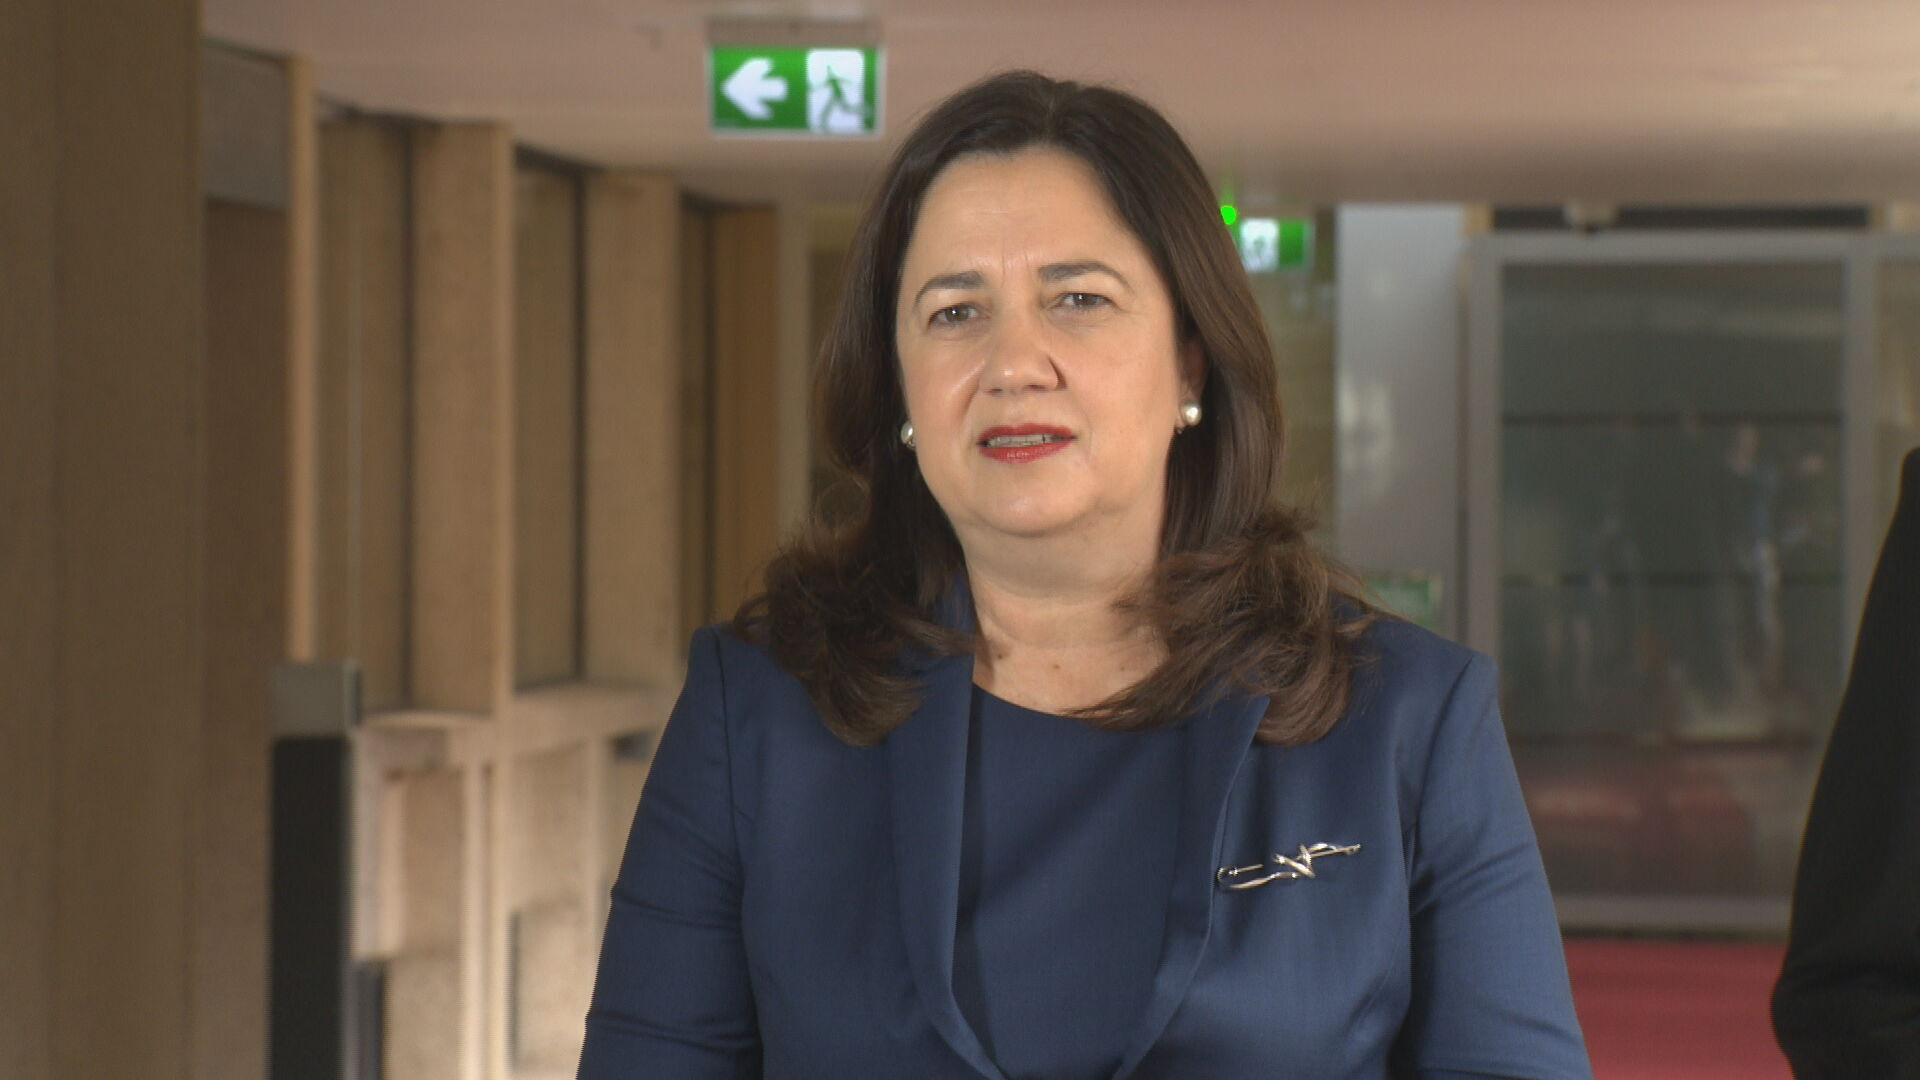 Queensland Premier Annastacia Palaszczuk said the state wants to host the Olympics in 2032.